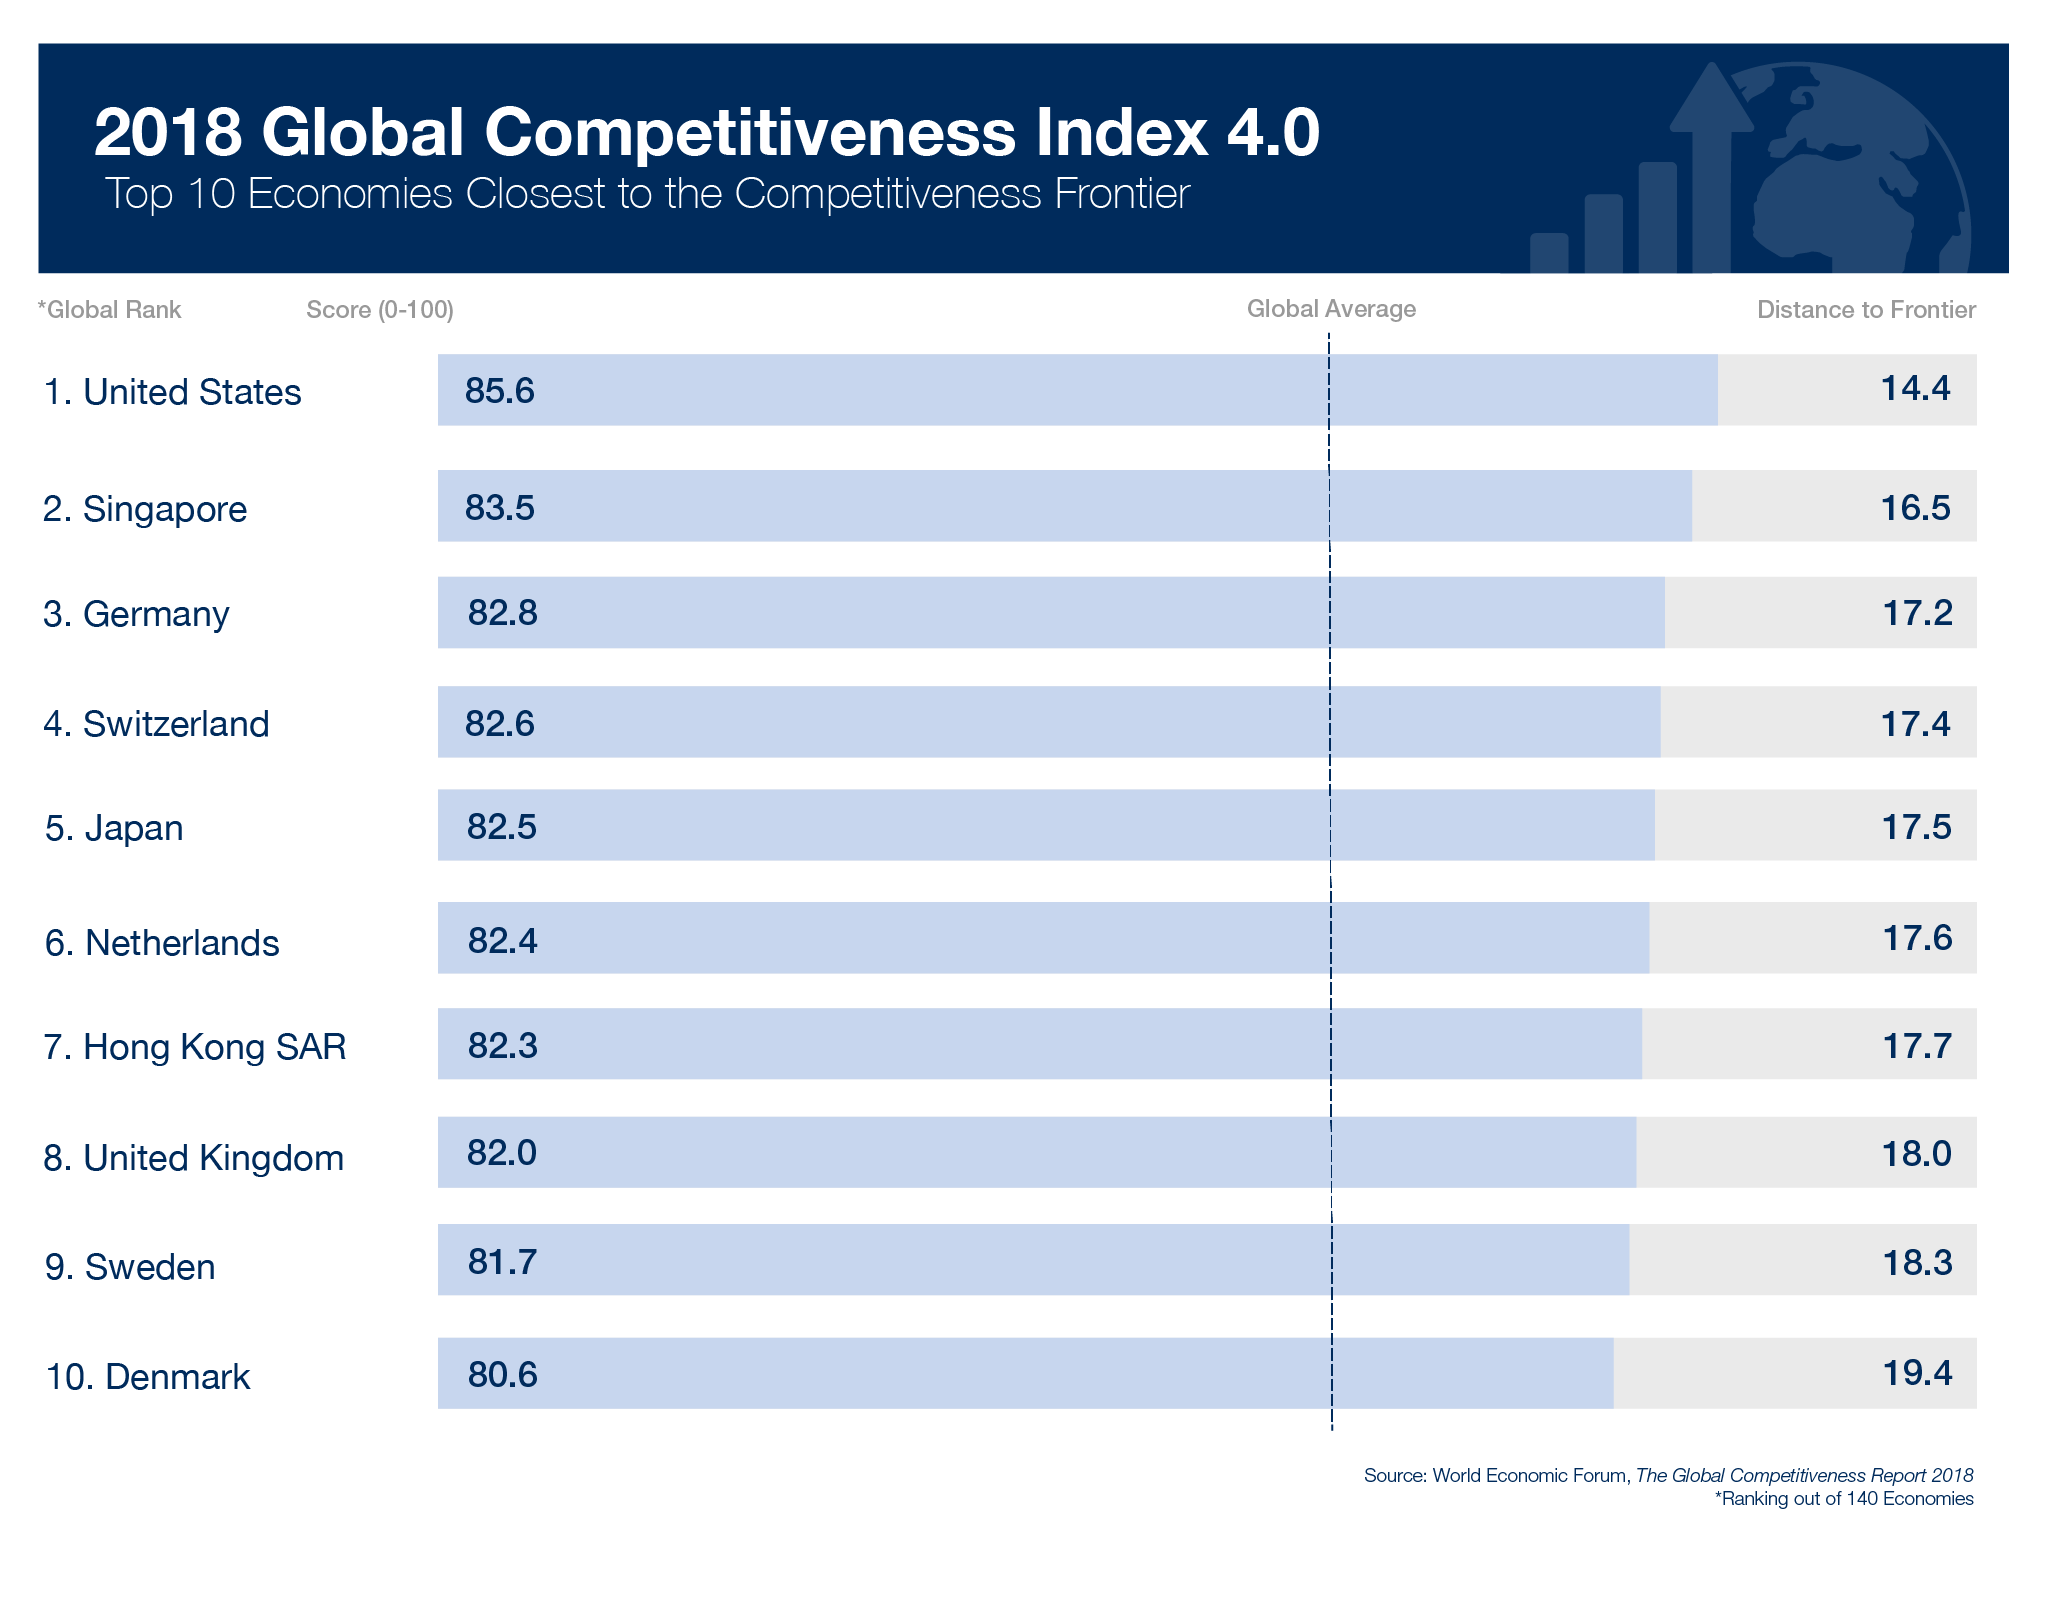 Vietnam ranks 77th in Global Competitiveness Index